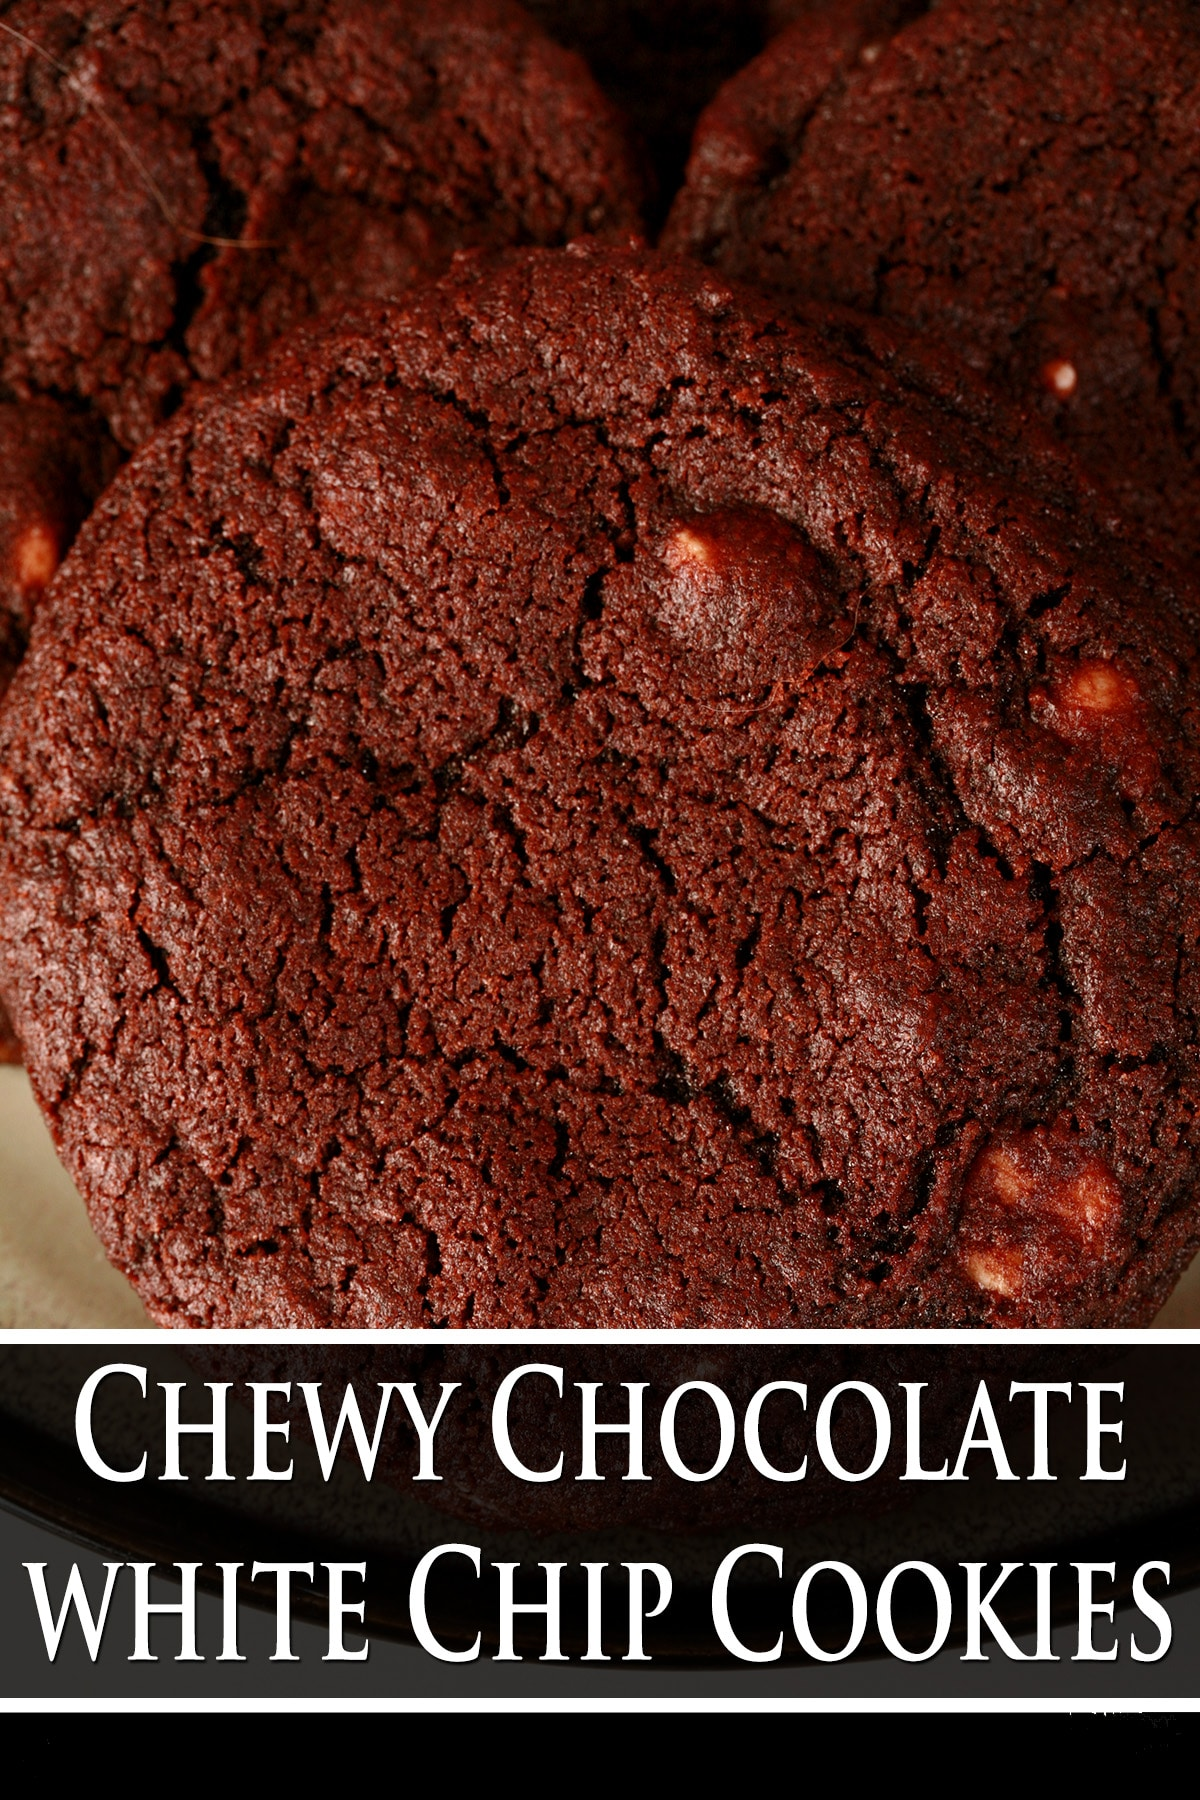 A close up view of a chewy chocolate cookie with white chocolate chips.